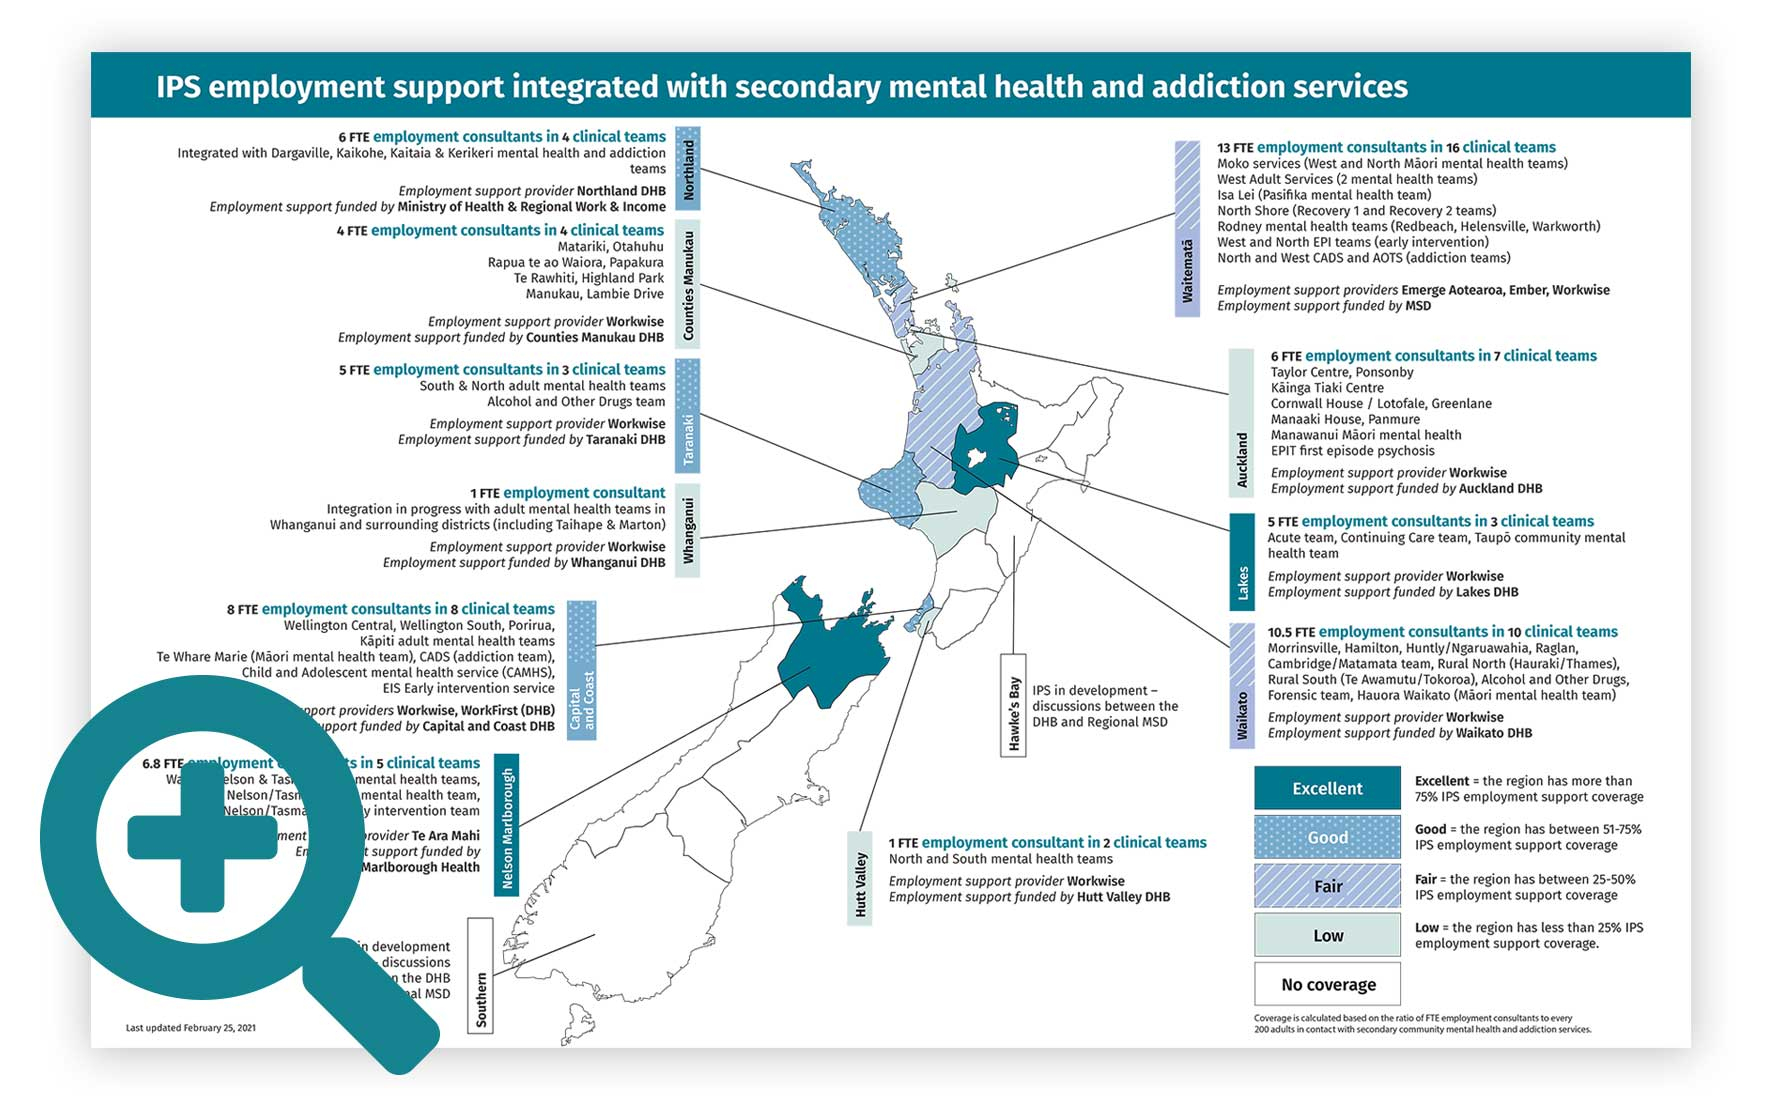 Map of IPS employment support integrated with secondary mental health and addiction services.